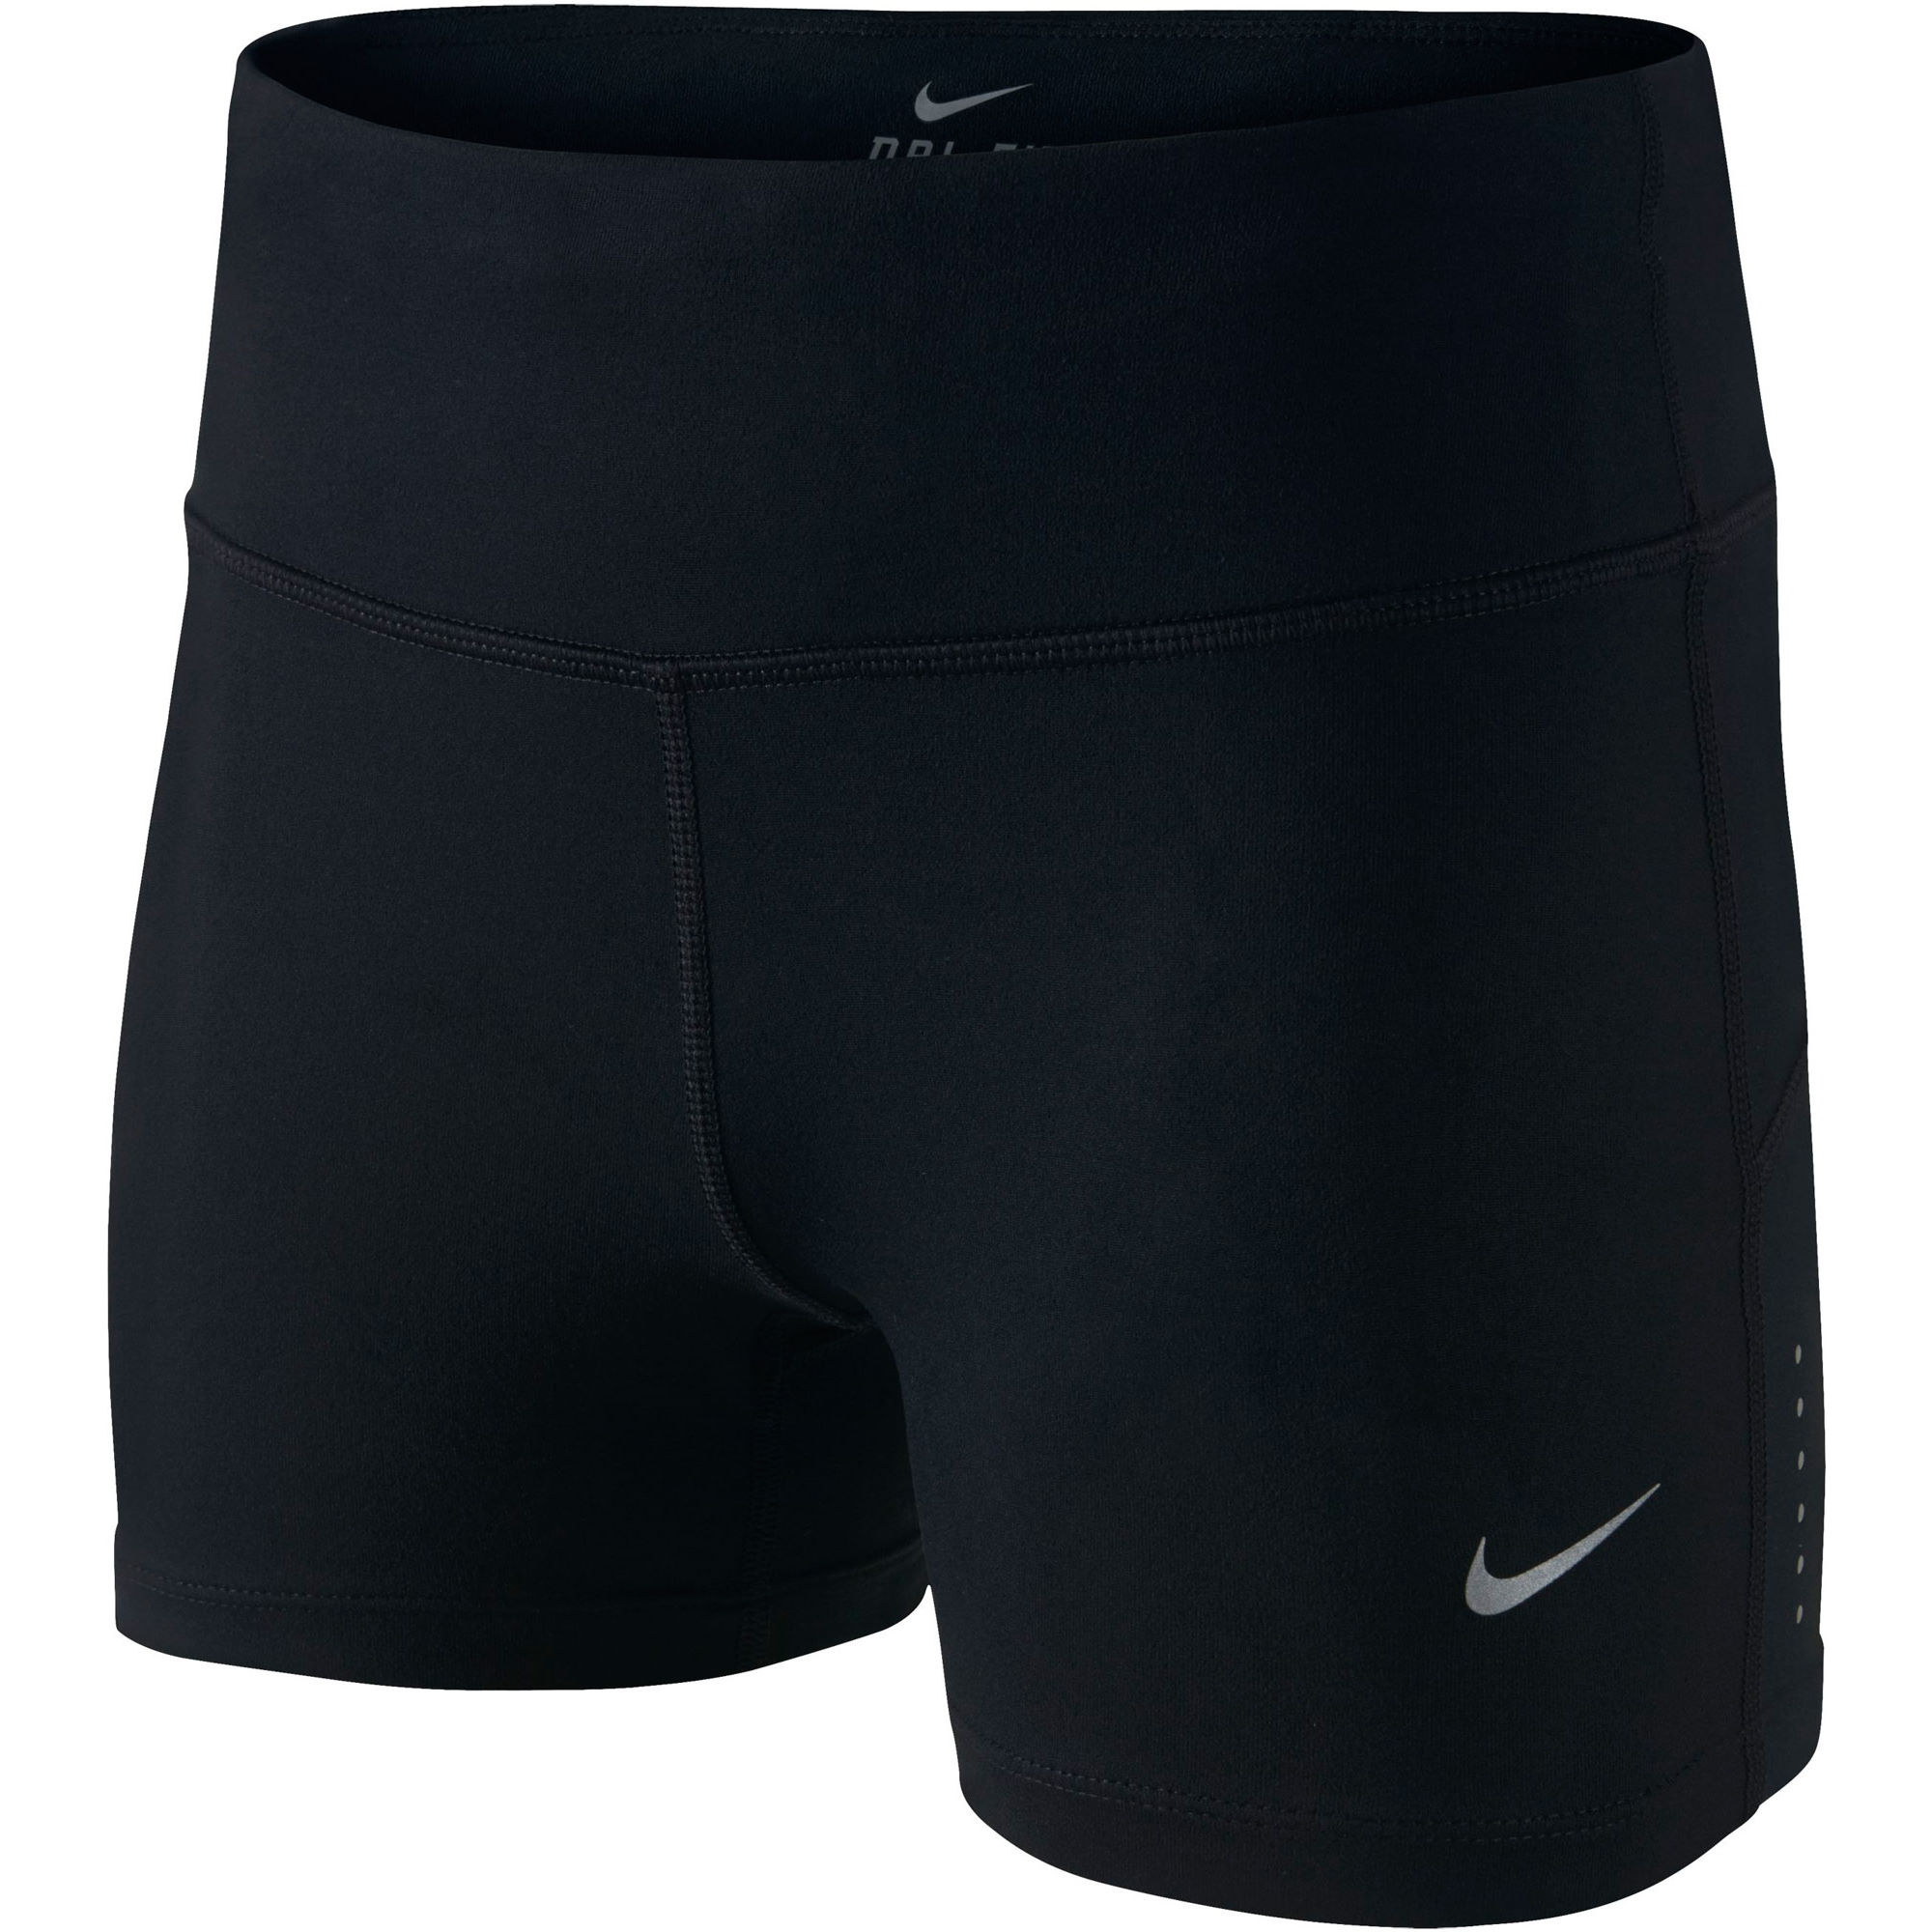 shorts de running nike women 39 s 2 5 epic run boy short su15 wiggle france. Black Bedroom Furniture Sets. Home Design Ideas